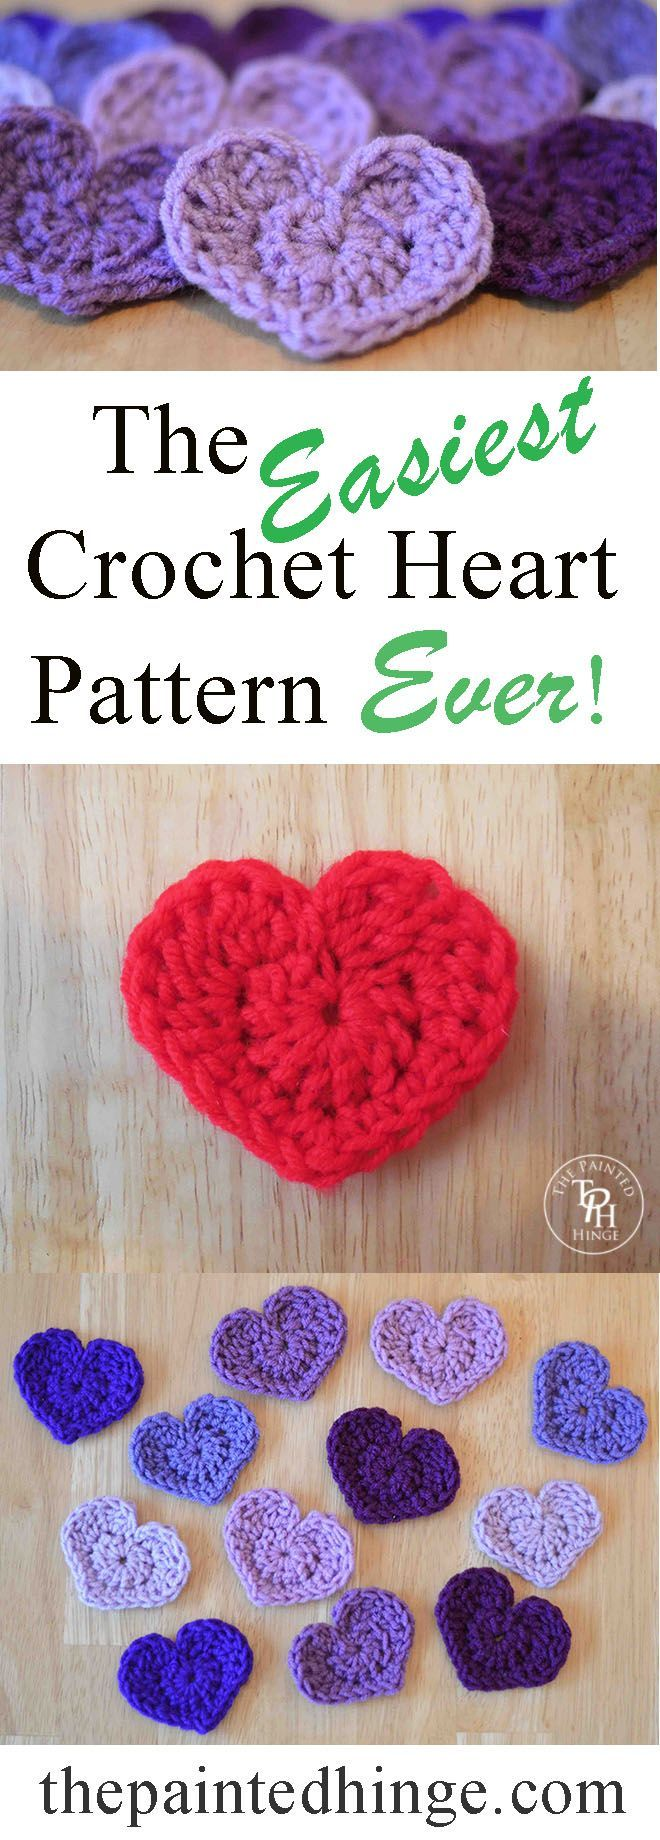 The Easiest Heart Crochet Pattern Ever! | Gehäkelte herzen, einfache ...